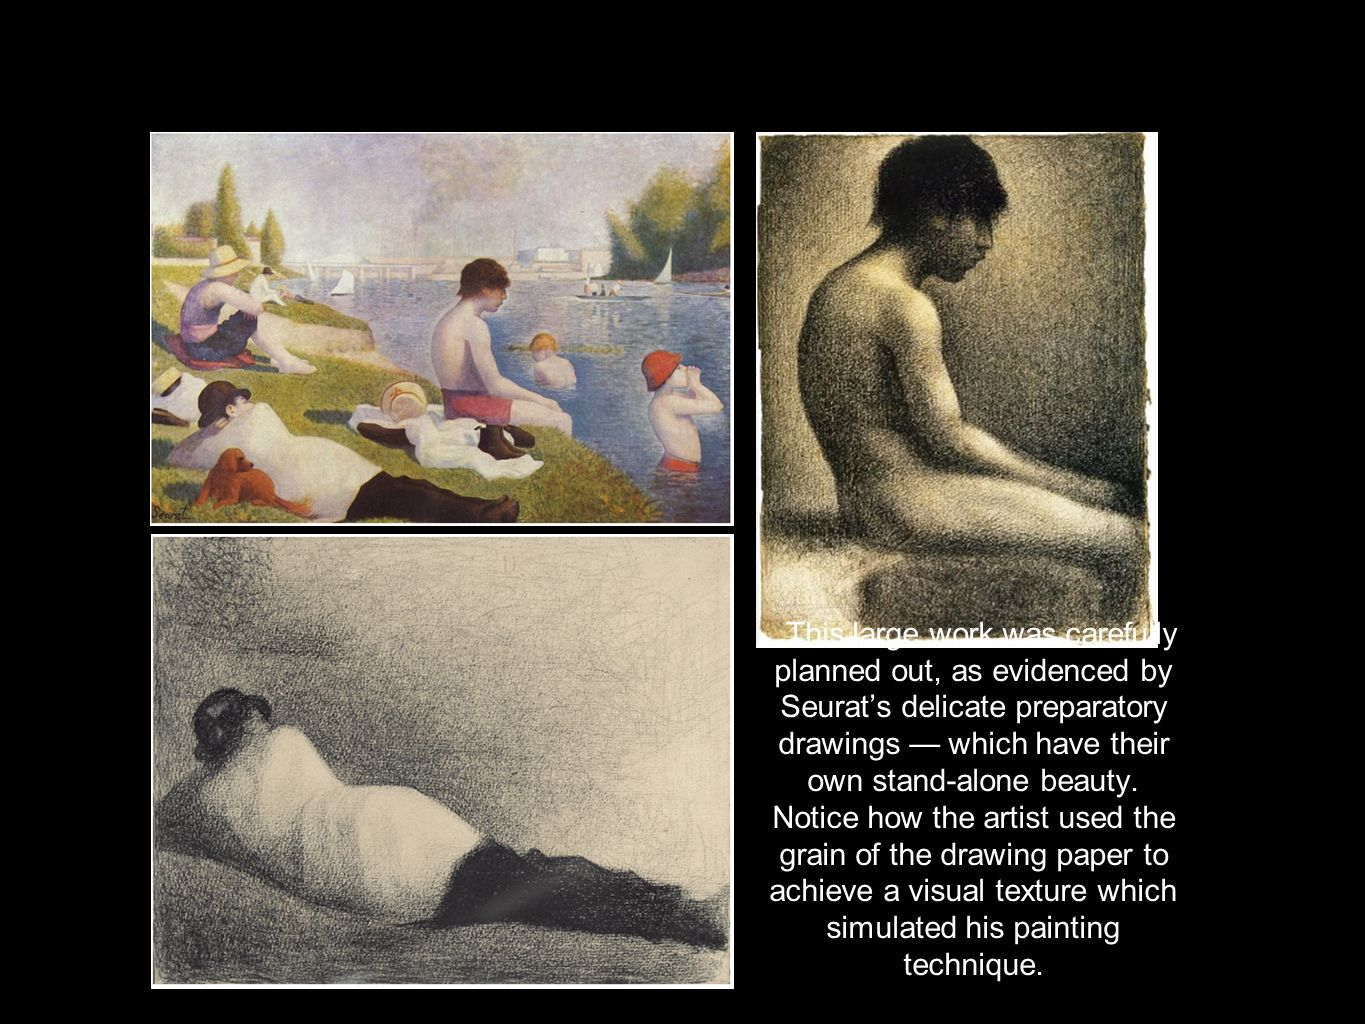 This large work was carefully planned out, as evidenced by Seurat's delicate preparatory drawings — which have their own stand-alone beauty.